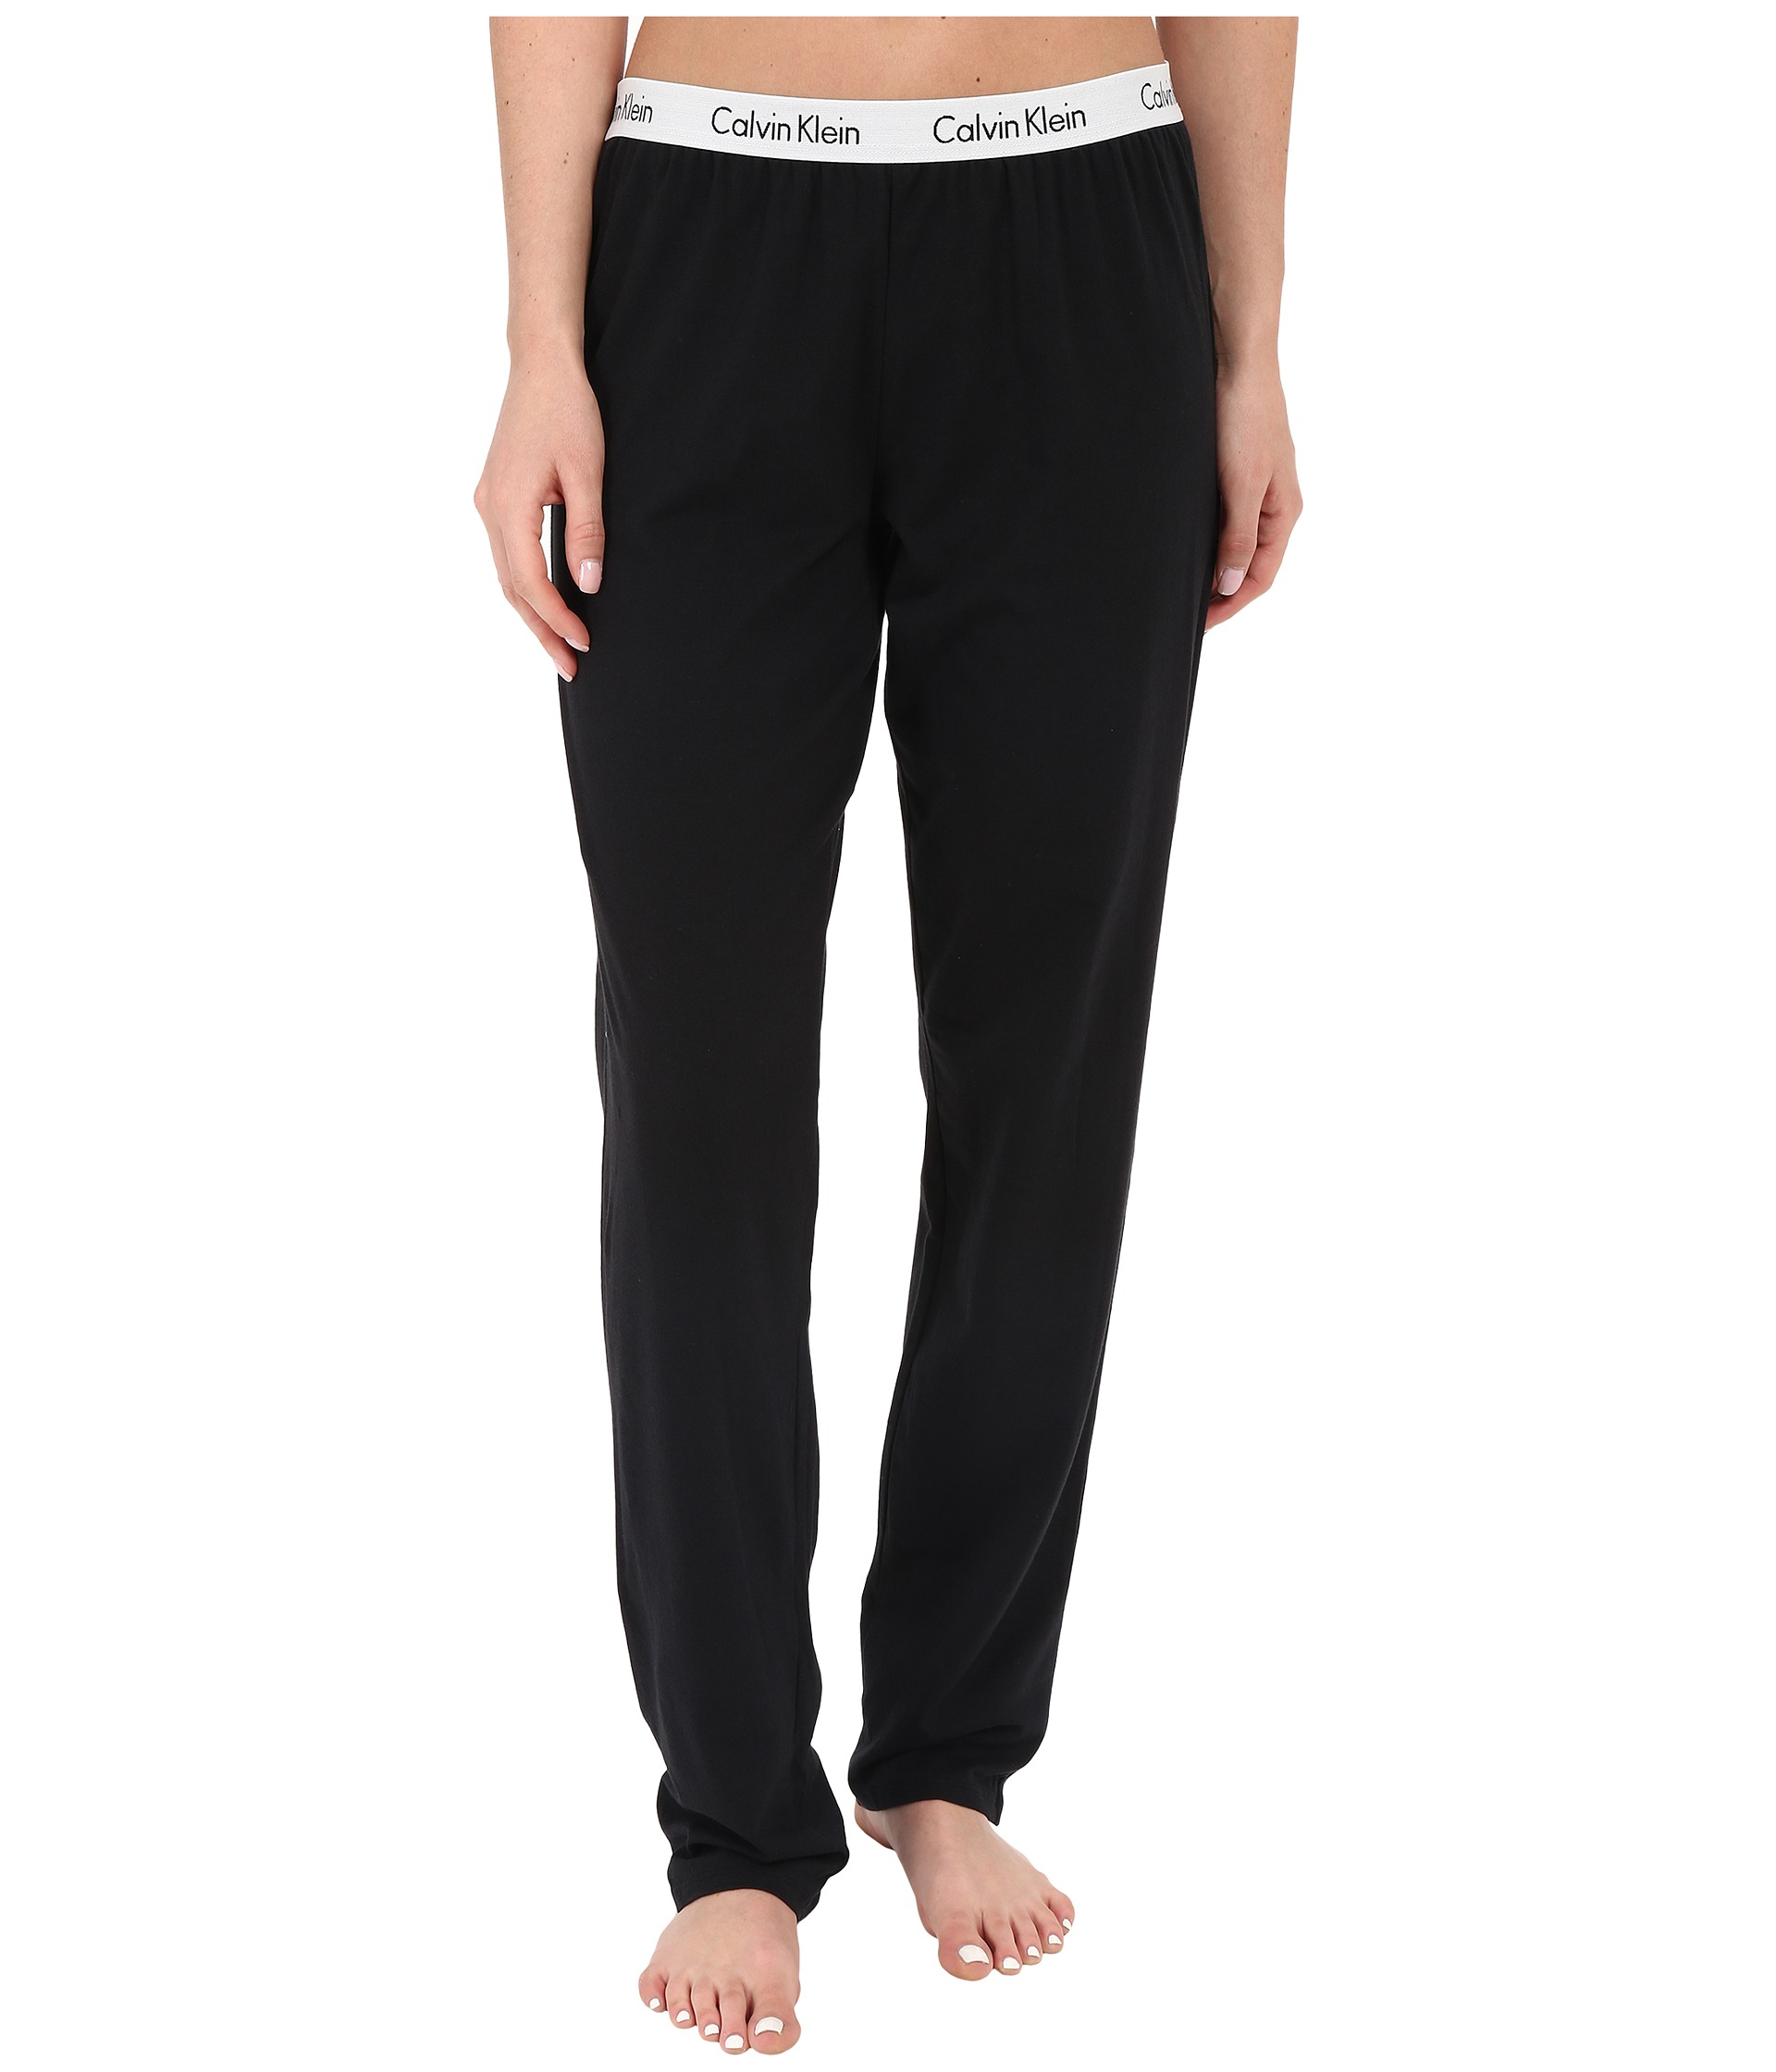 Ck Lounge Pants Collections Photo Parkerforsenate f50f2e1f5